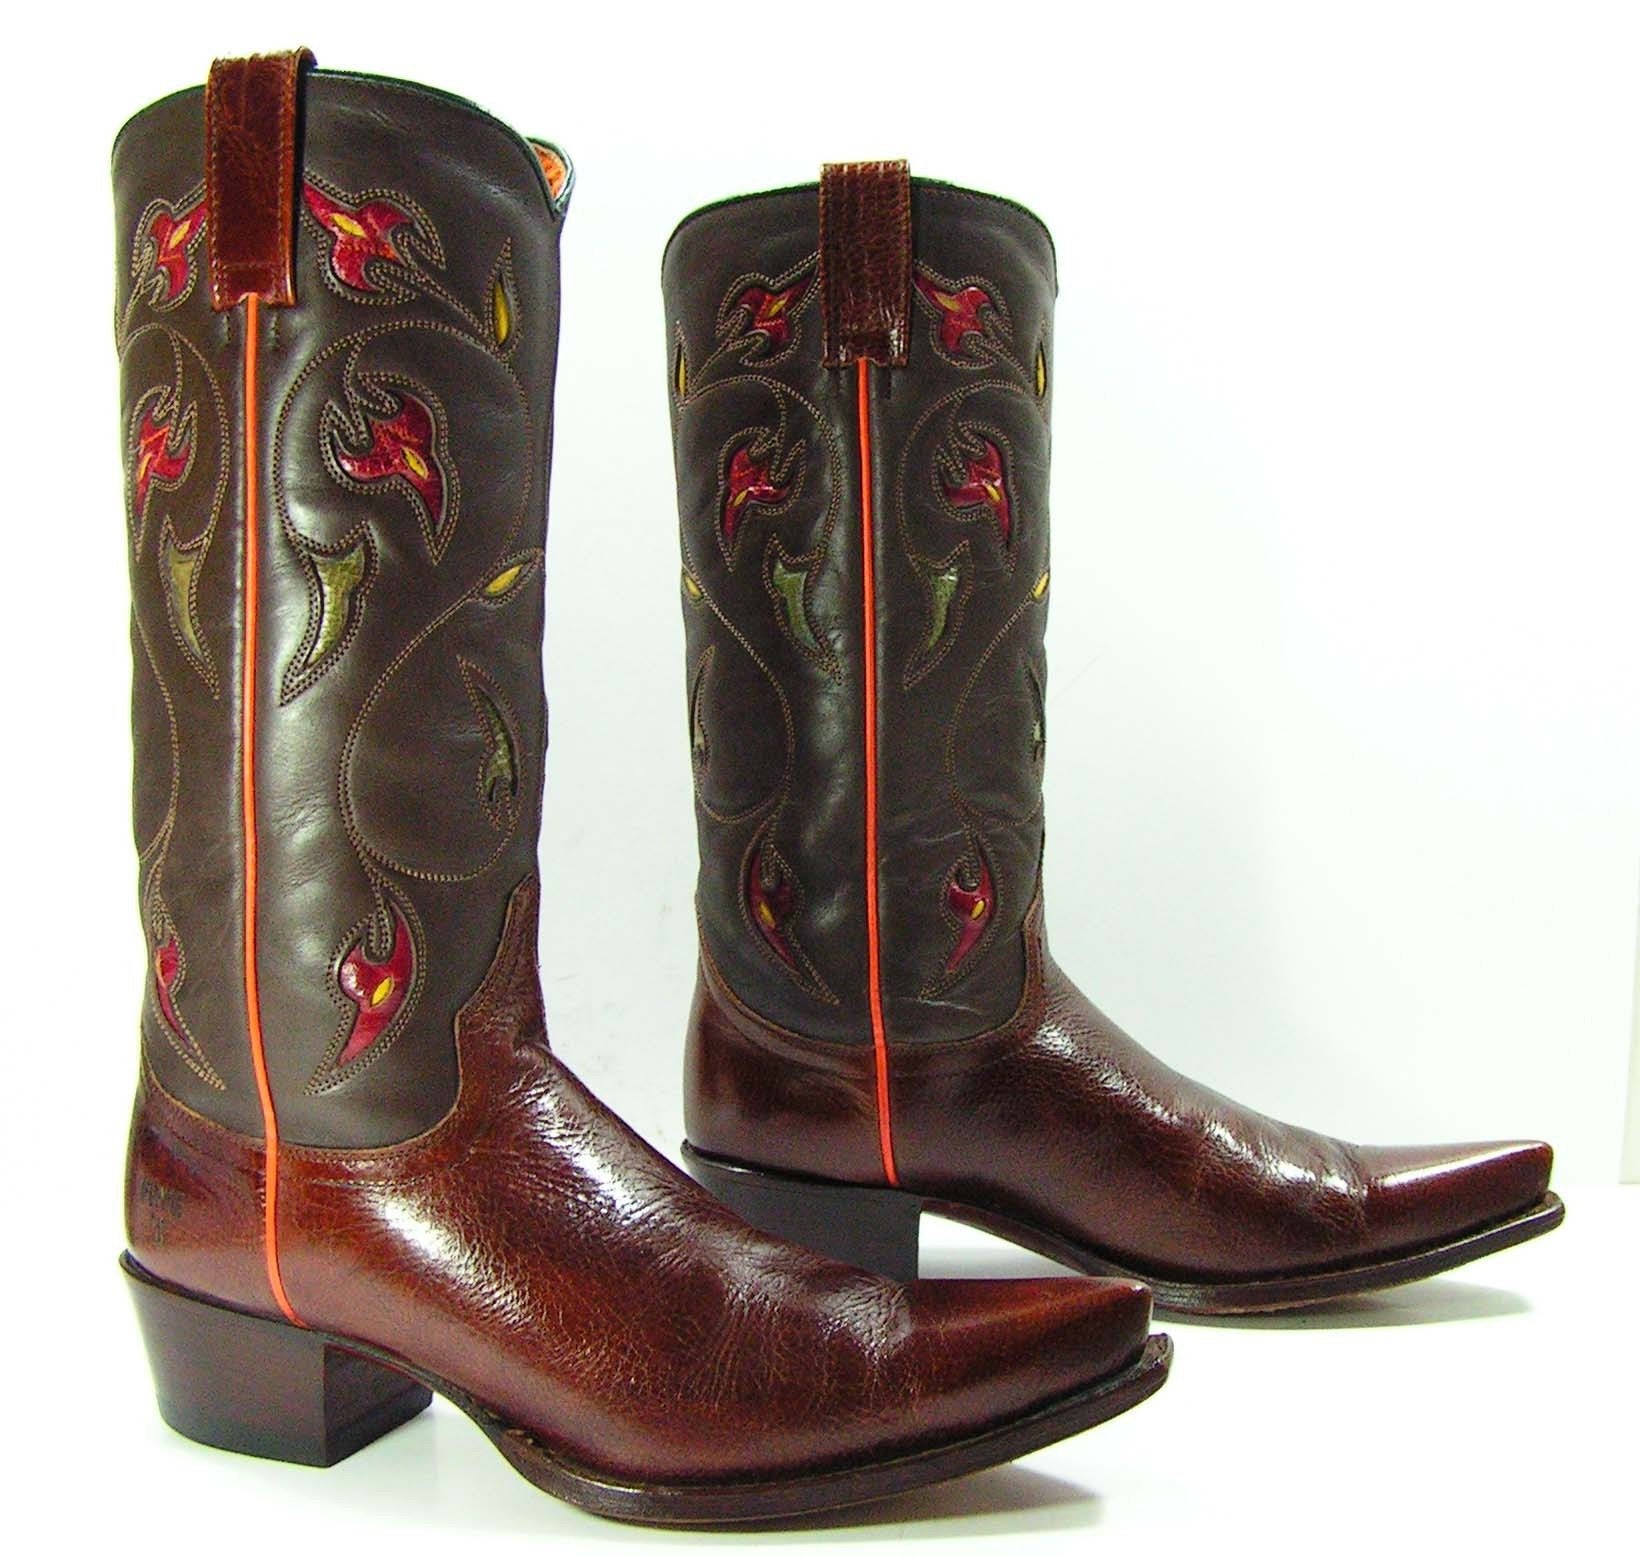 Vintage Frye Cowboy Boots Womens 9 M B Brown Red Gray Yellow